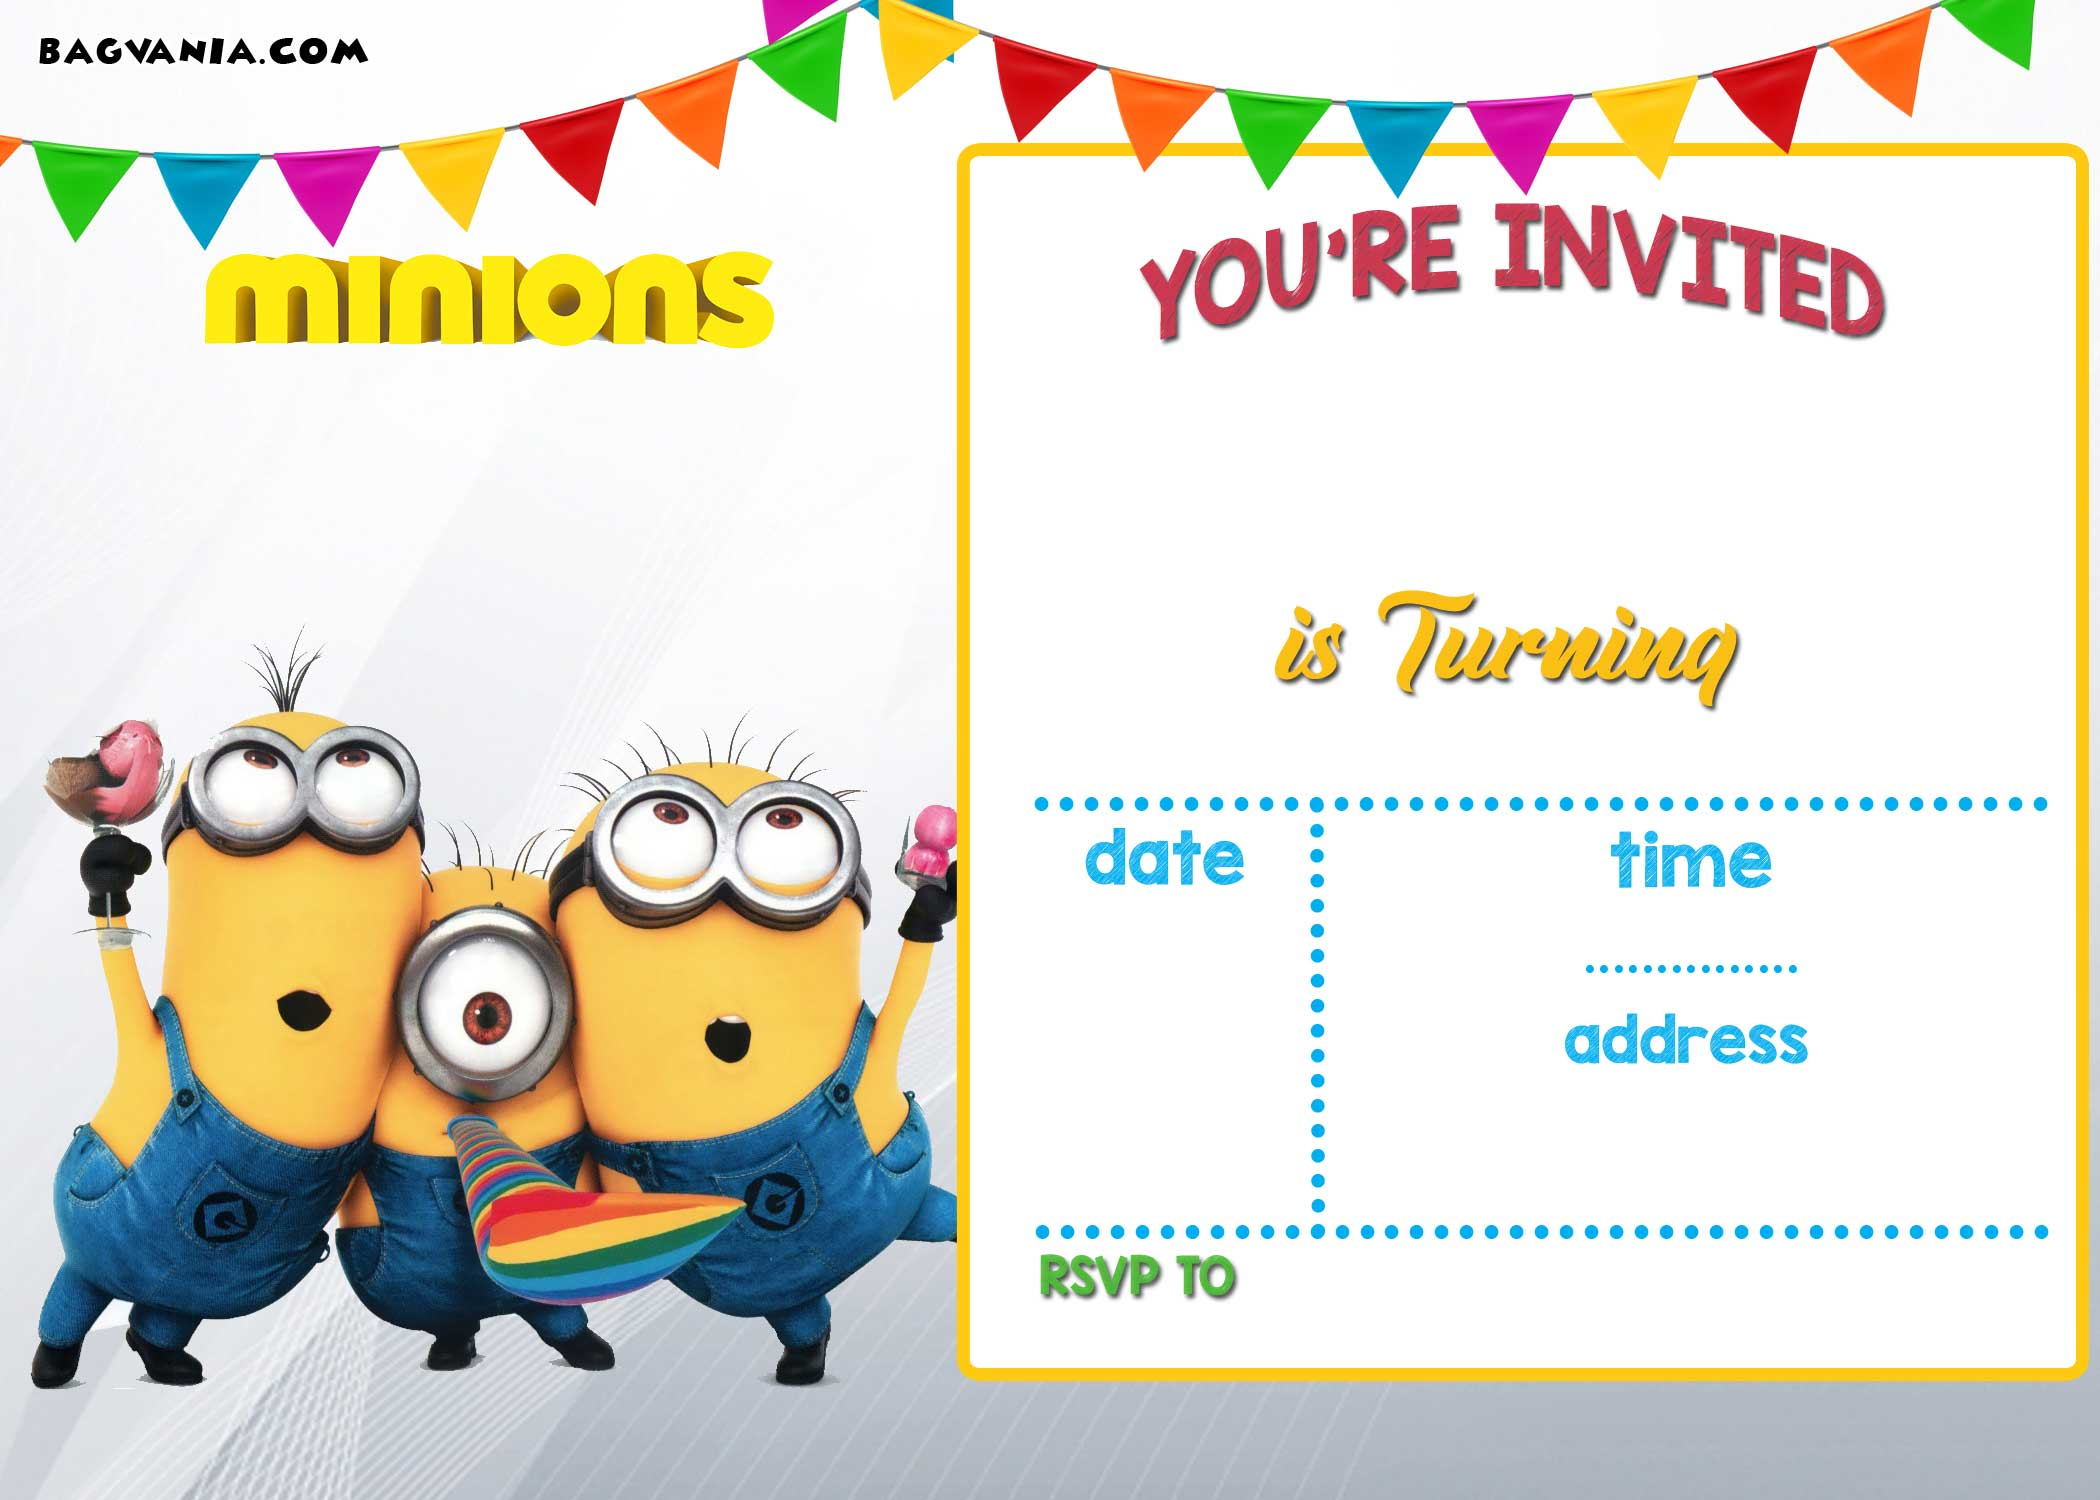 FREE Printable Minion Birthday Invitation Templates Bagvania - Birthday invitation template minions